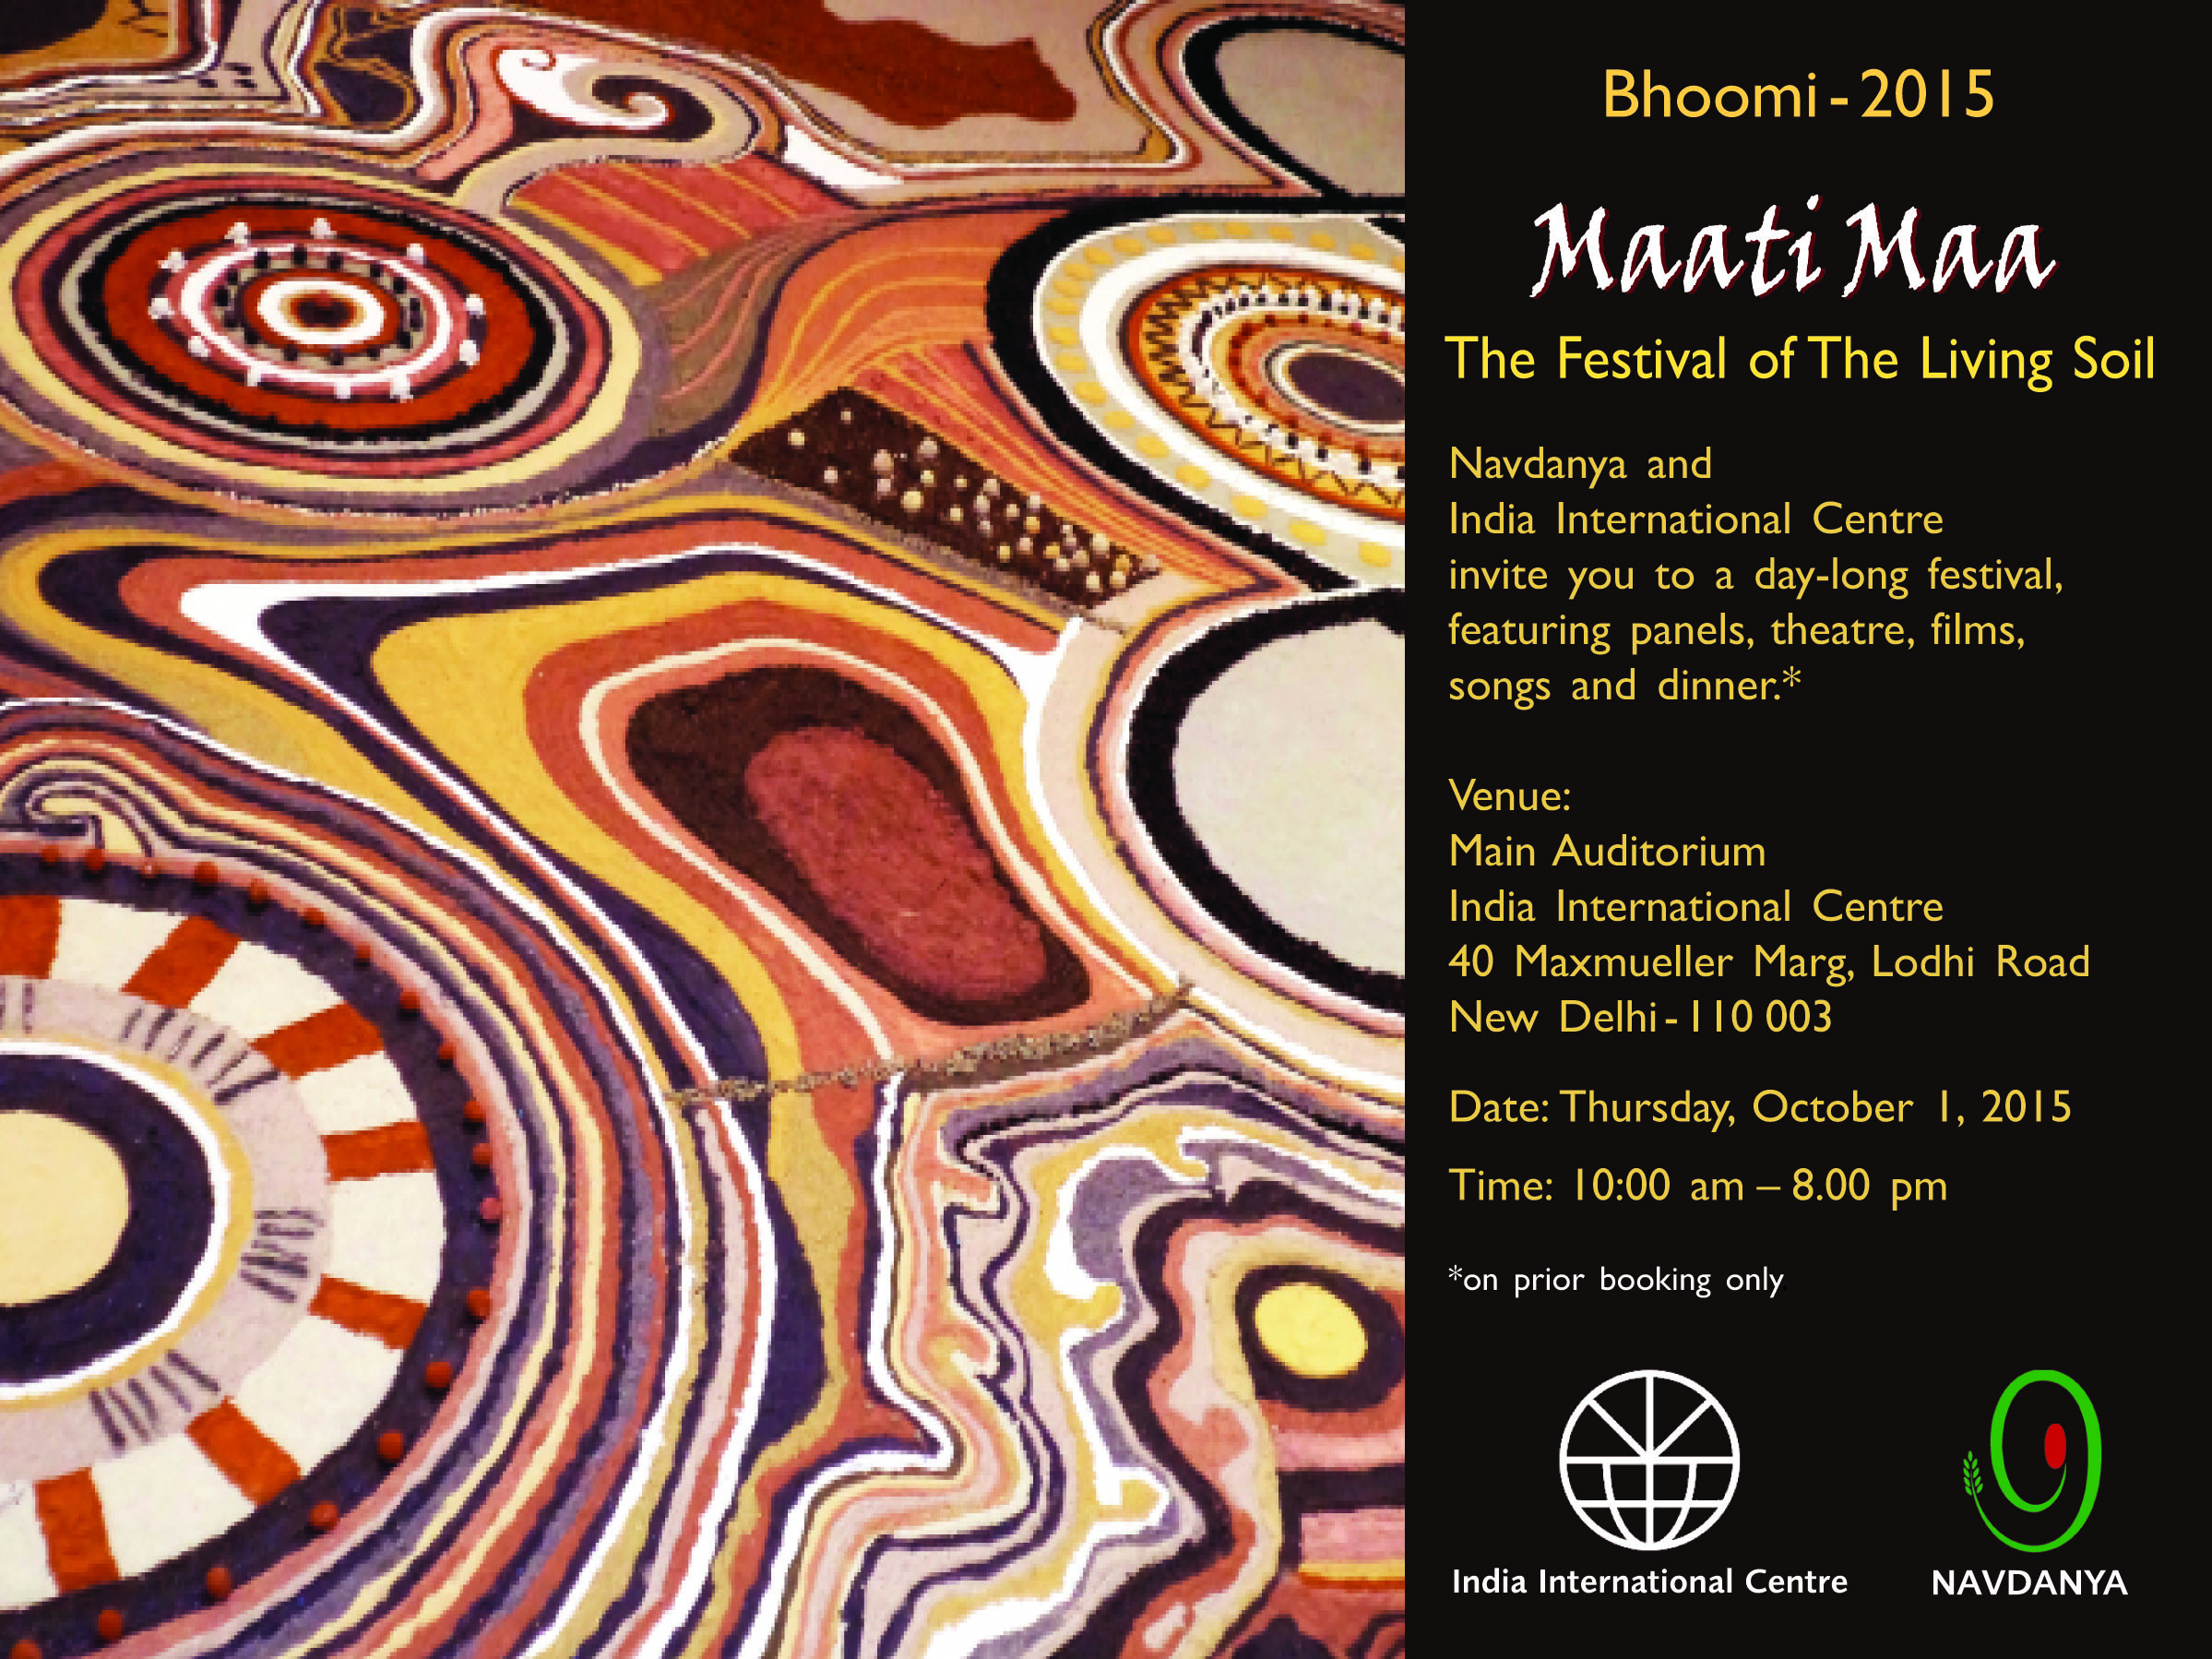 Bhoomi Maati Maa: the Festival of The Living Soil